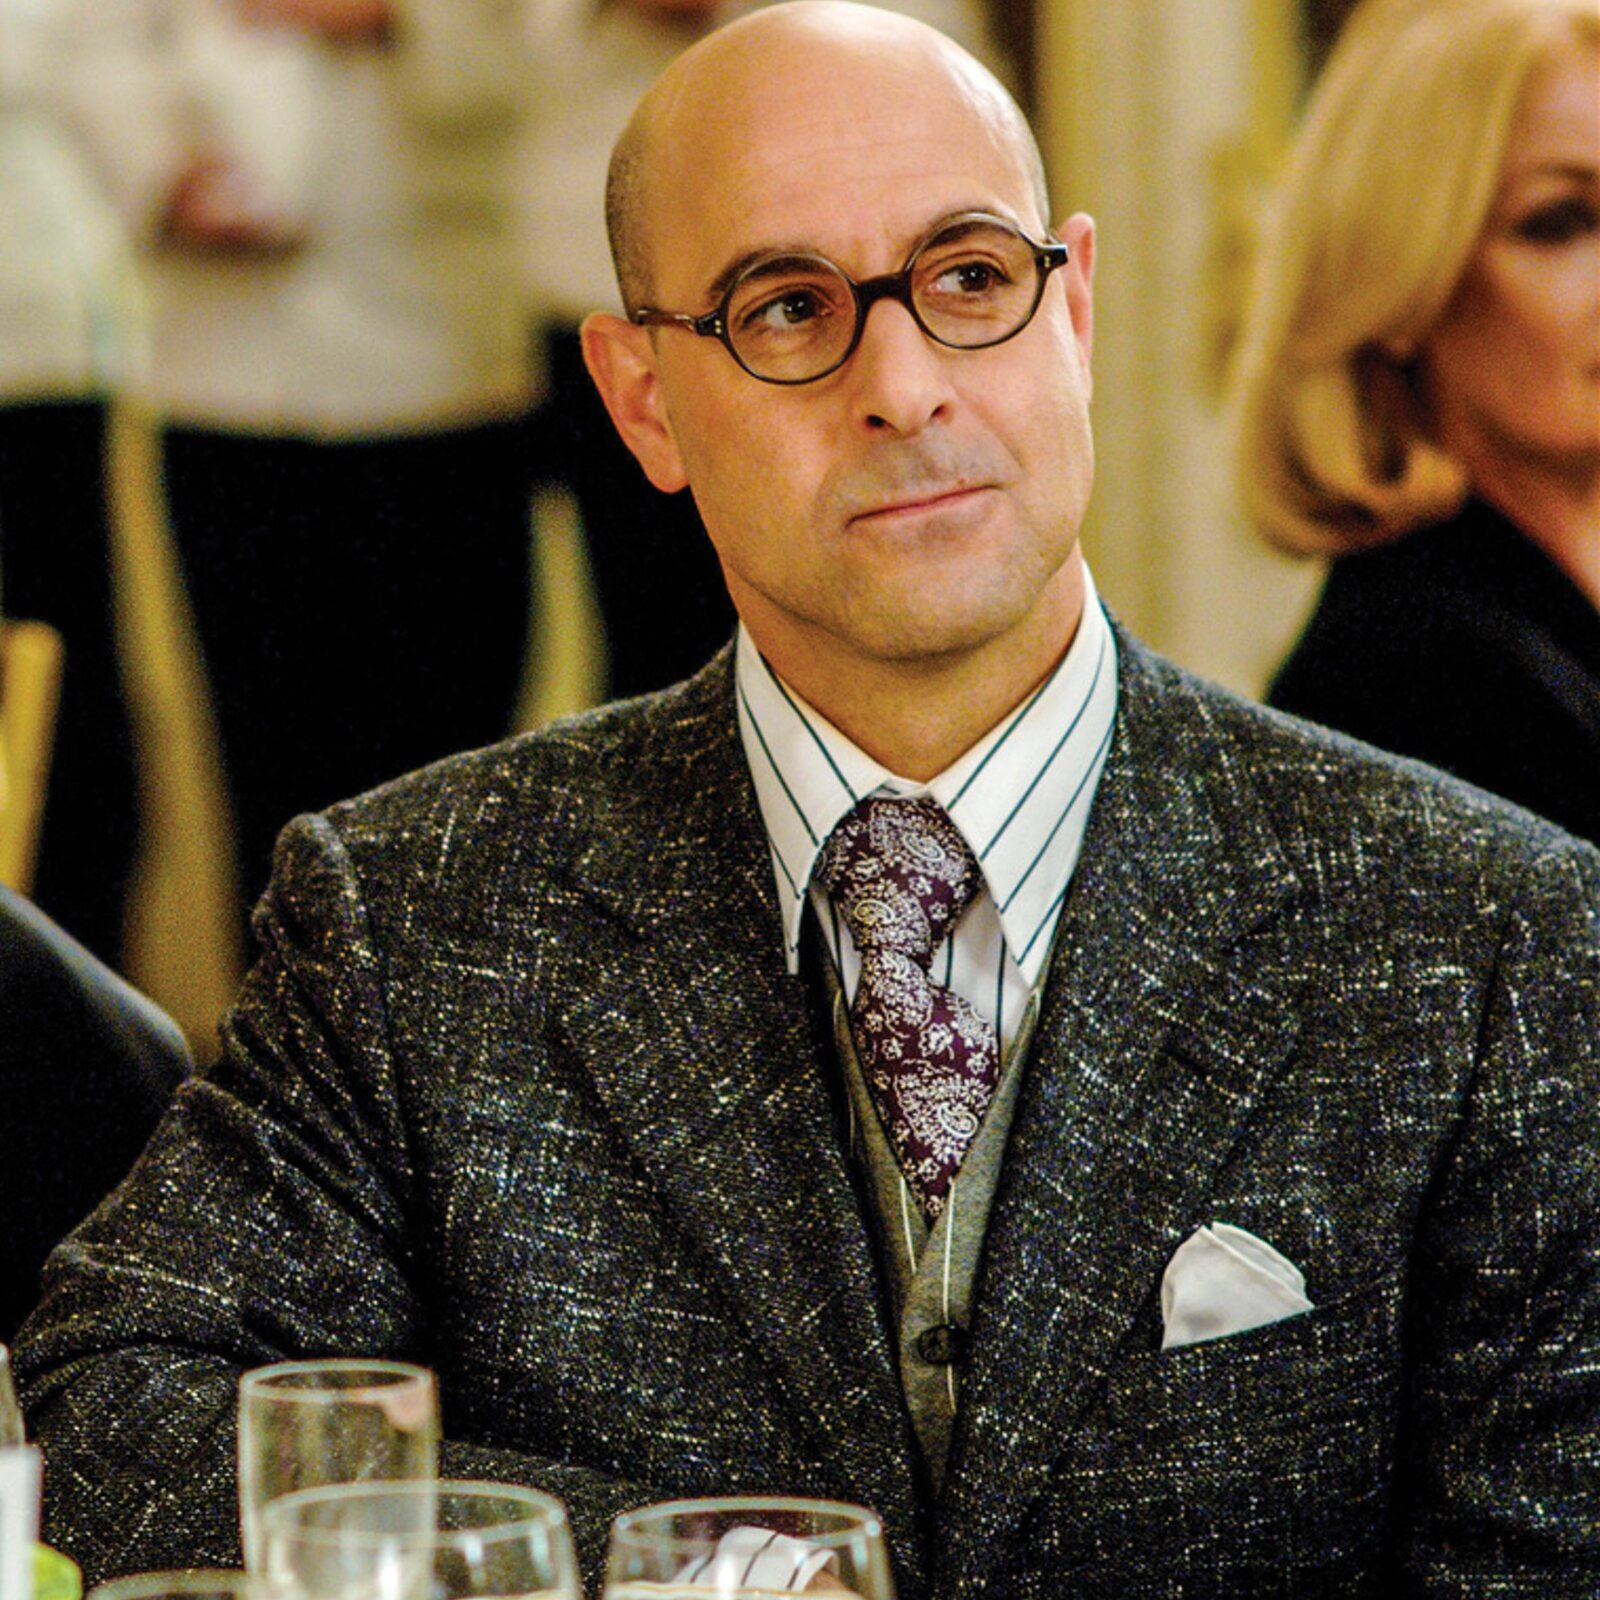 Stanley Tucci reveals he survived cancer 3 years ago